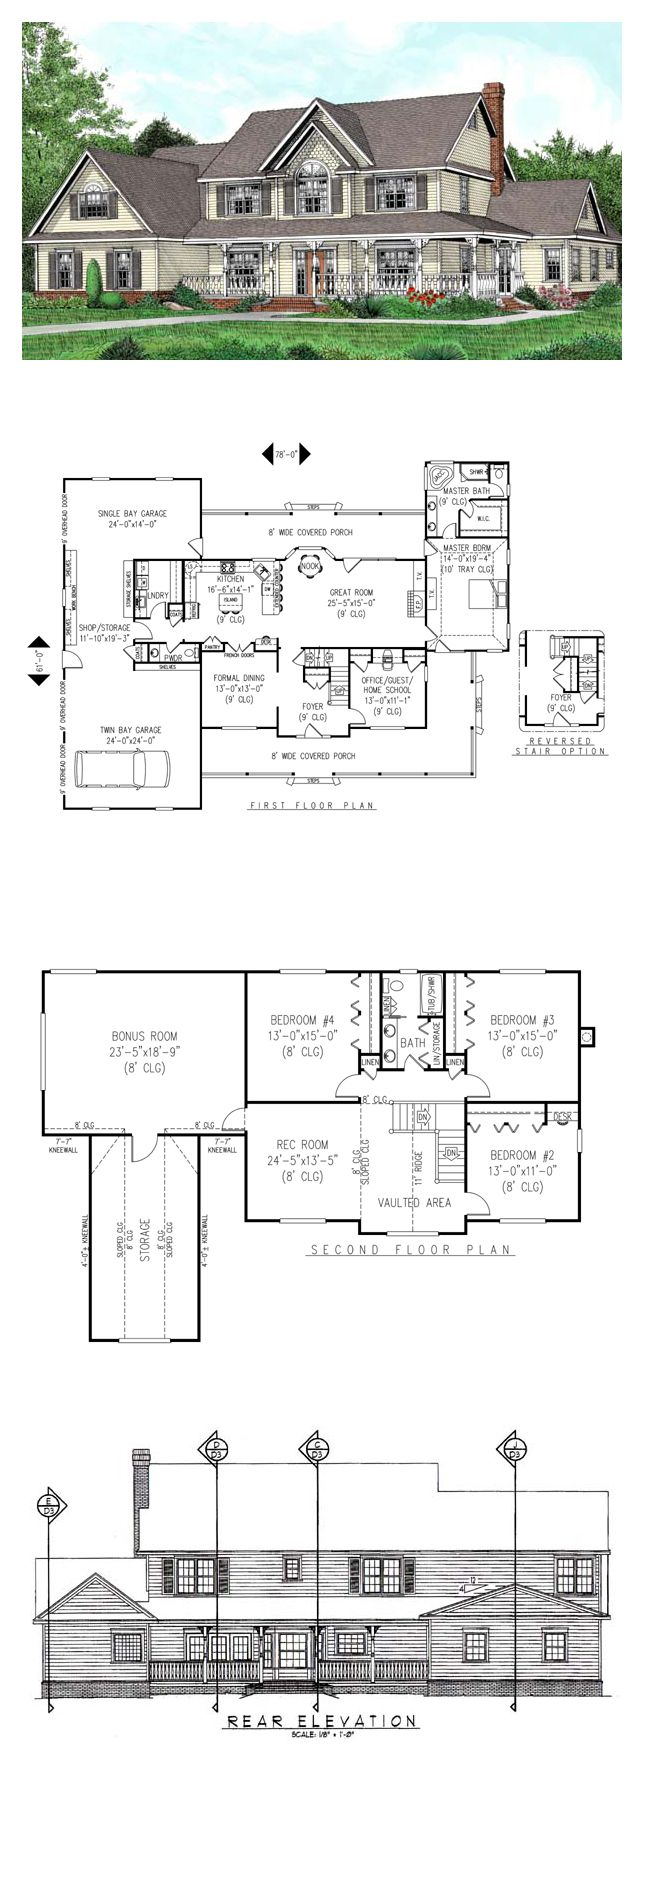 Country house plan total living area sq ft